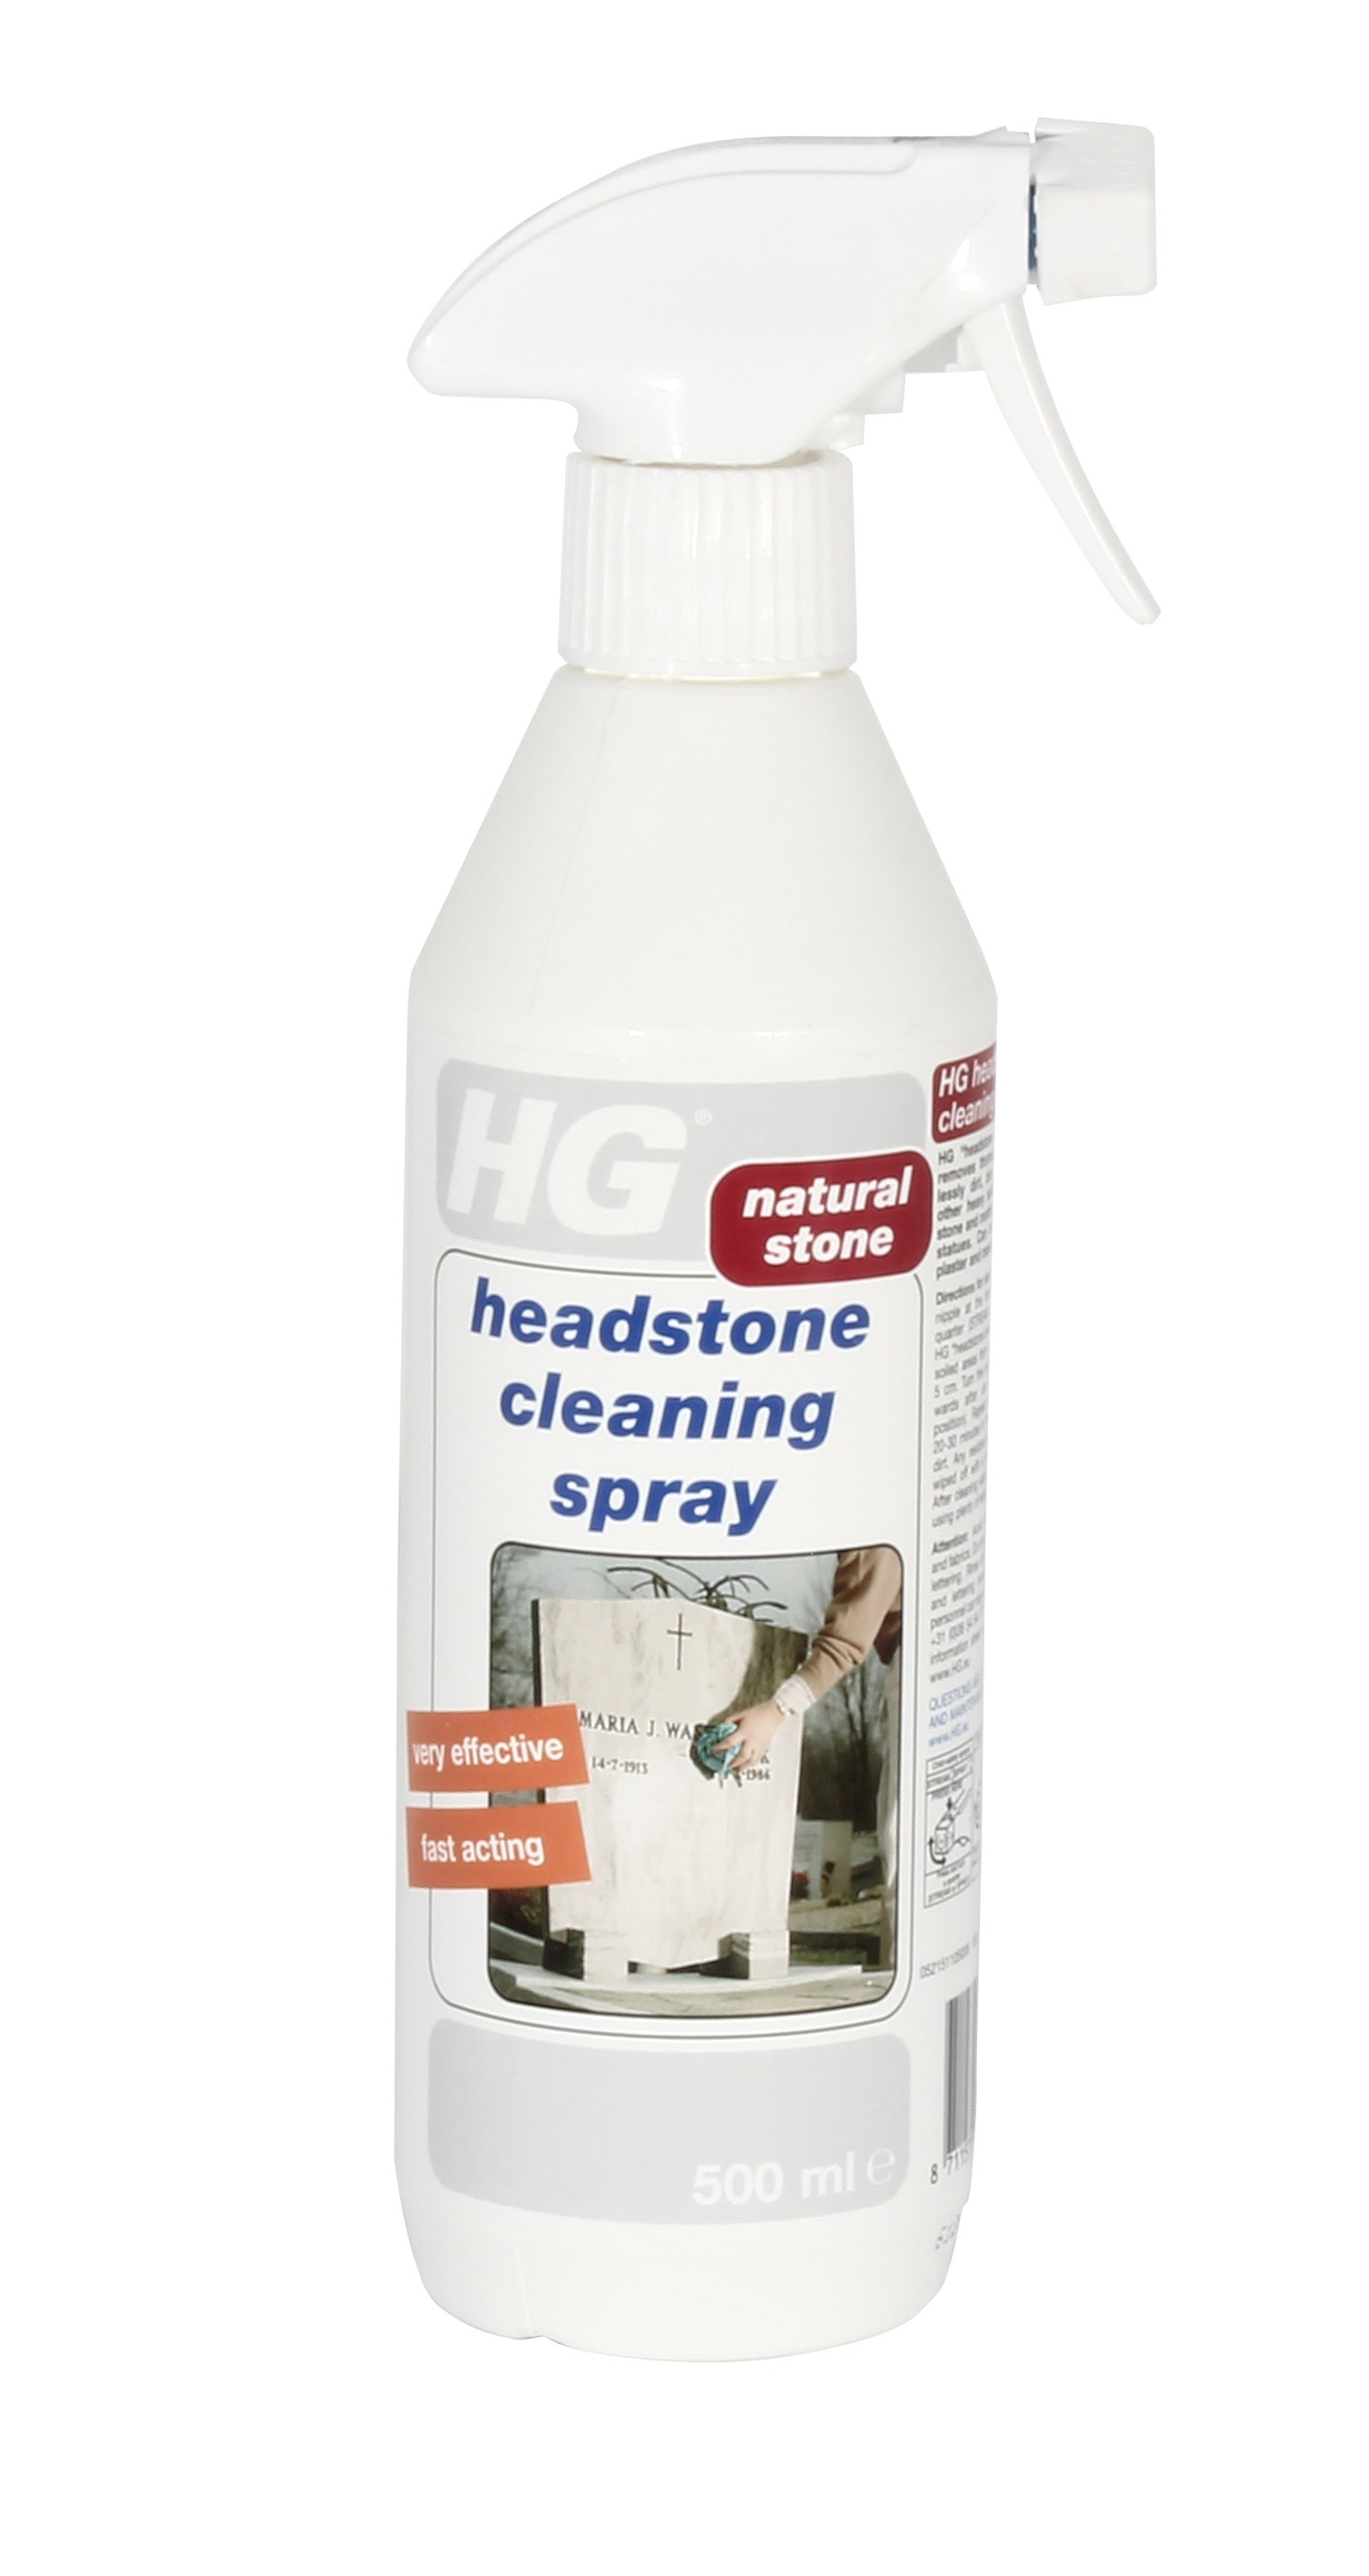 hg headstone cleaning spray 1 litre home cleaning. Black Bedroom Furniture Sets. Home Design Ideas